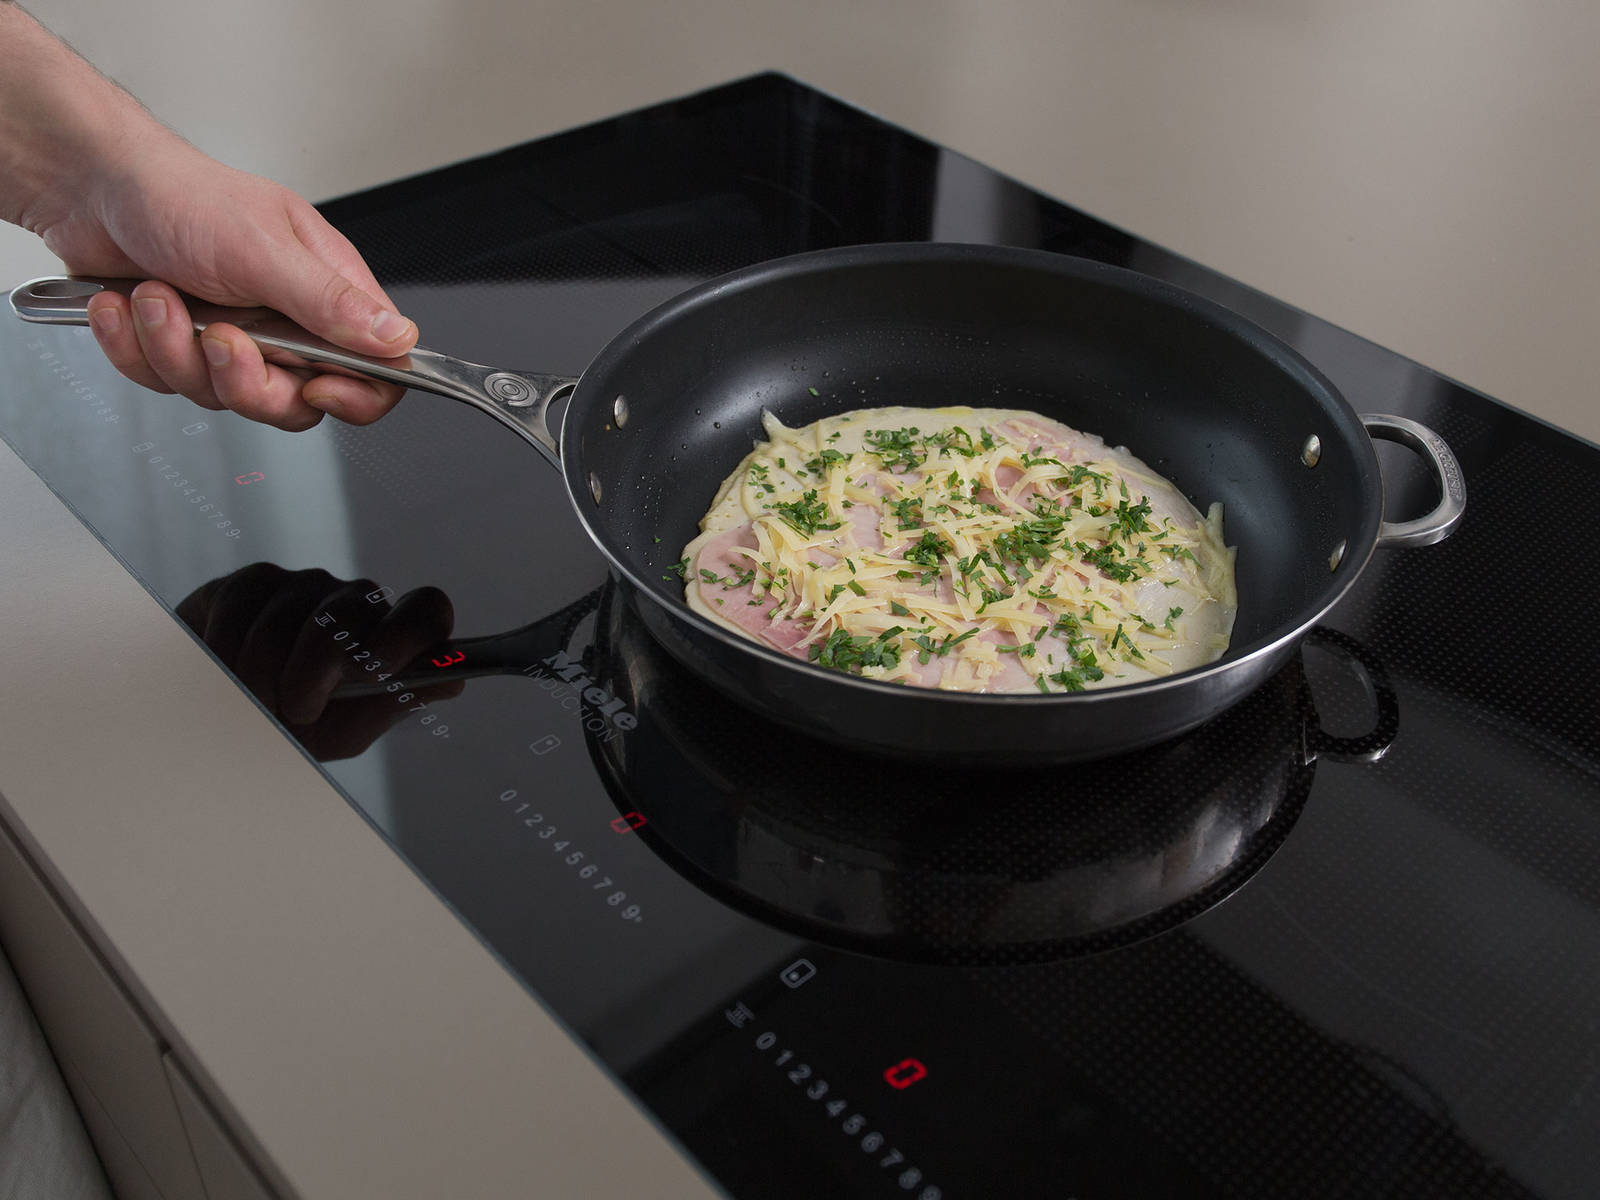 Heat oil in a large non-stick frying pan set over medium heat. Ladle batter into pan and fry until golden brown for approx. 2 –  3 min., or until crêpe is cooked through. Sprinkle with some cheese and parsley over crêpe and top with ham. As soon as the cheese begins to melt, start to roll up the crêpe and remove from pan. Repeat with the reamining batter and filling ingredients. Mix salad with dressing and serve alongside the crêpes. Enjoy!